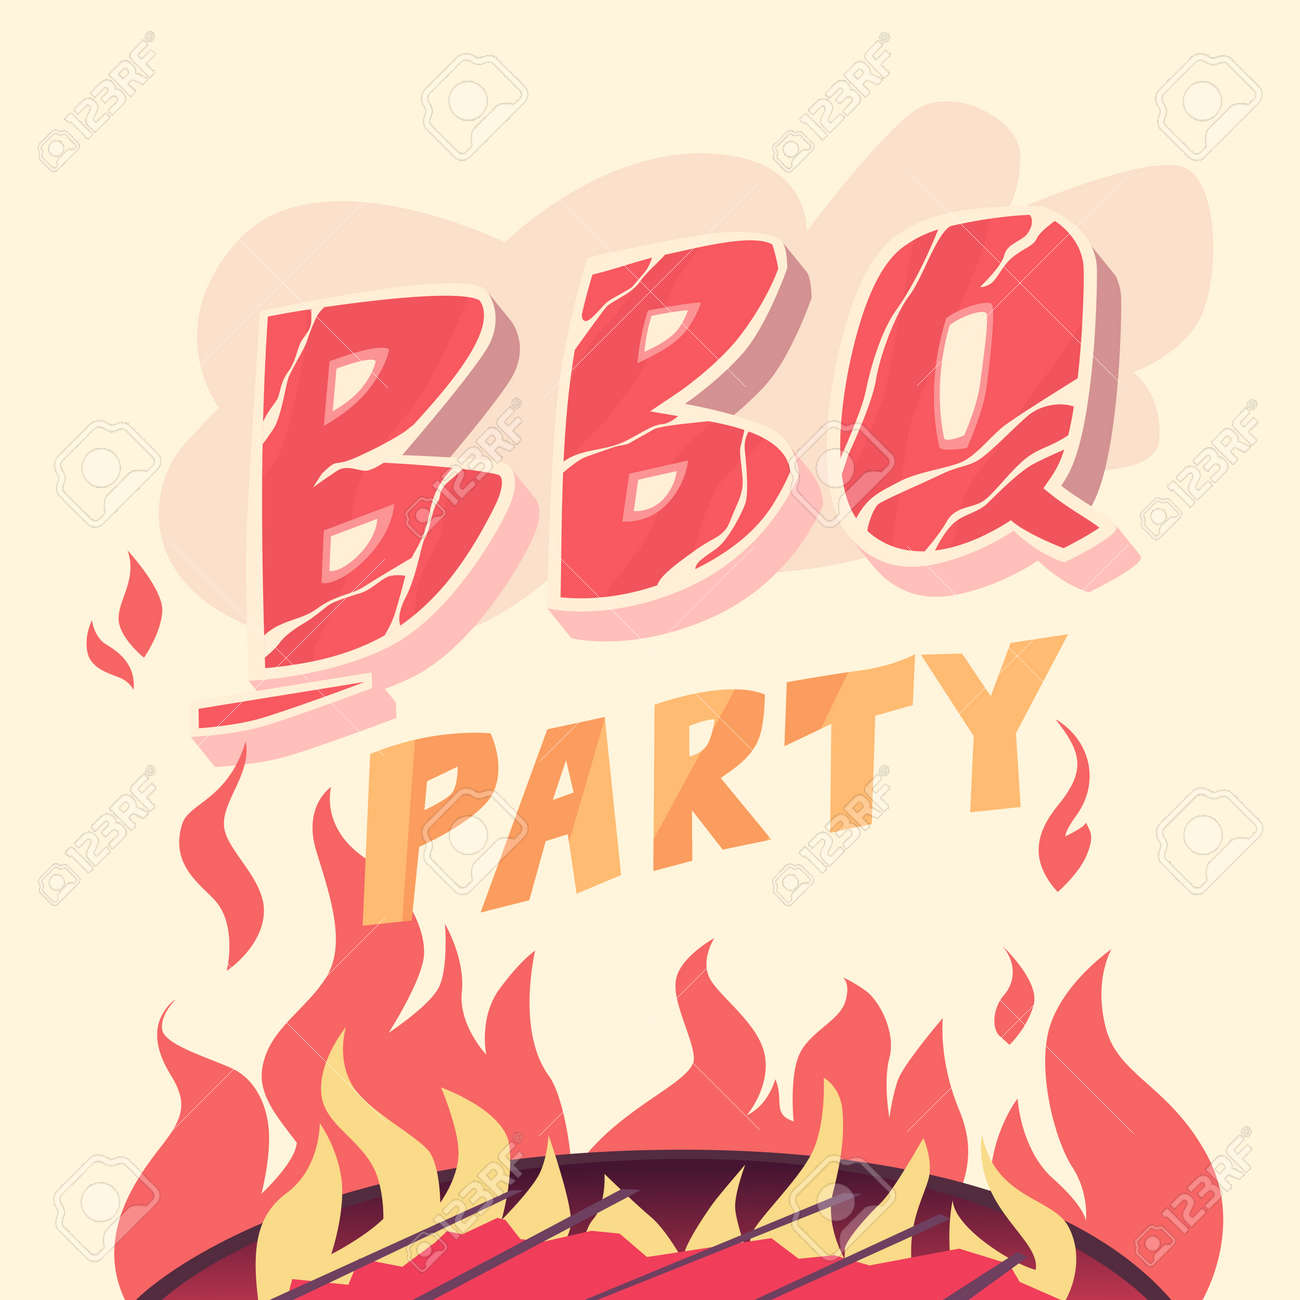 bbq party illustration in cartoon style the grill and meat